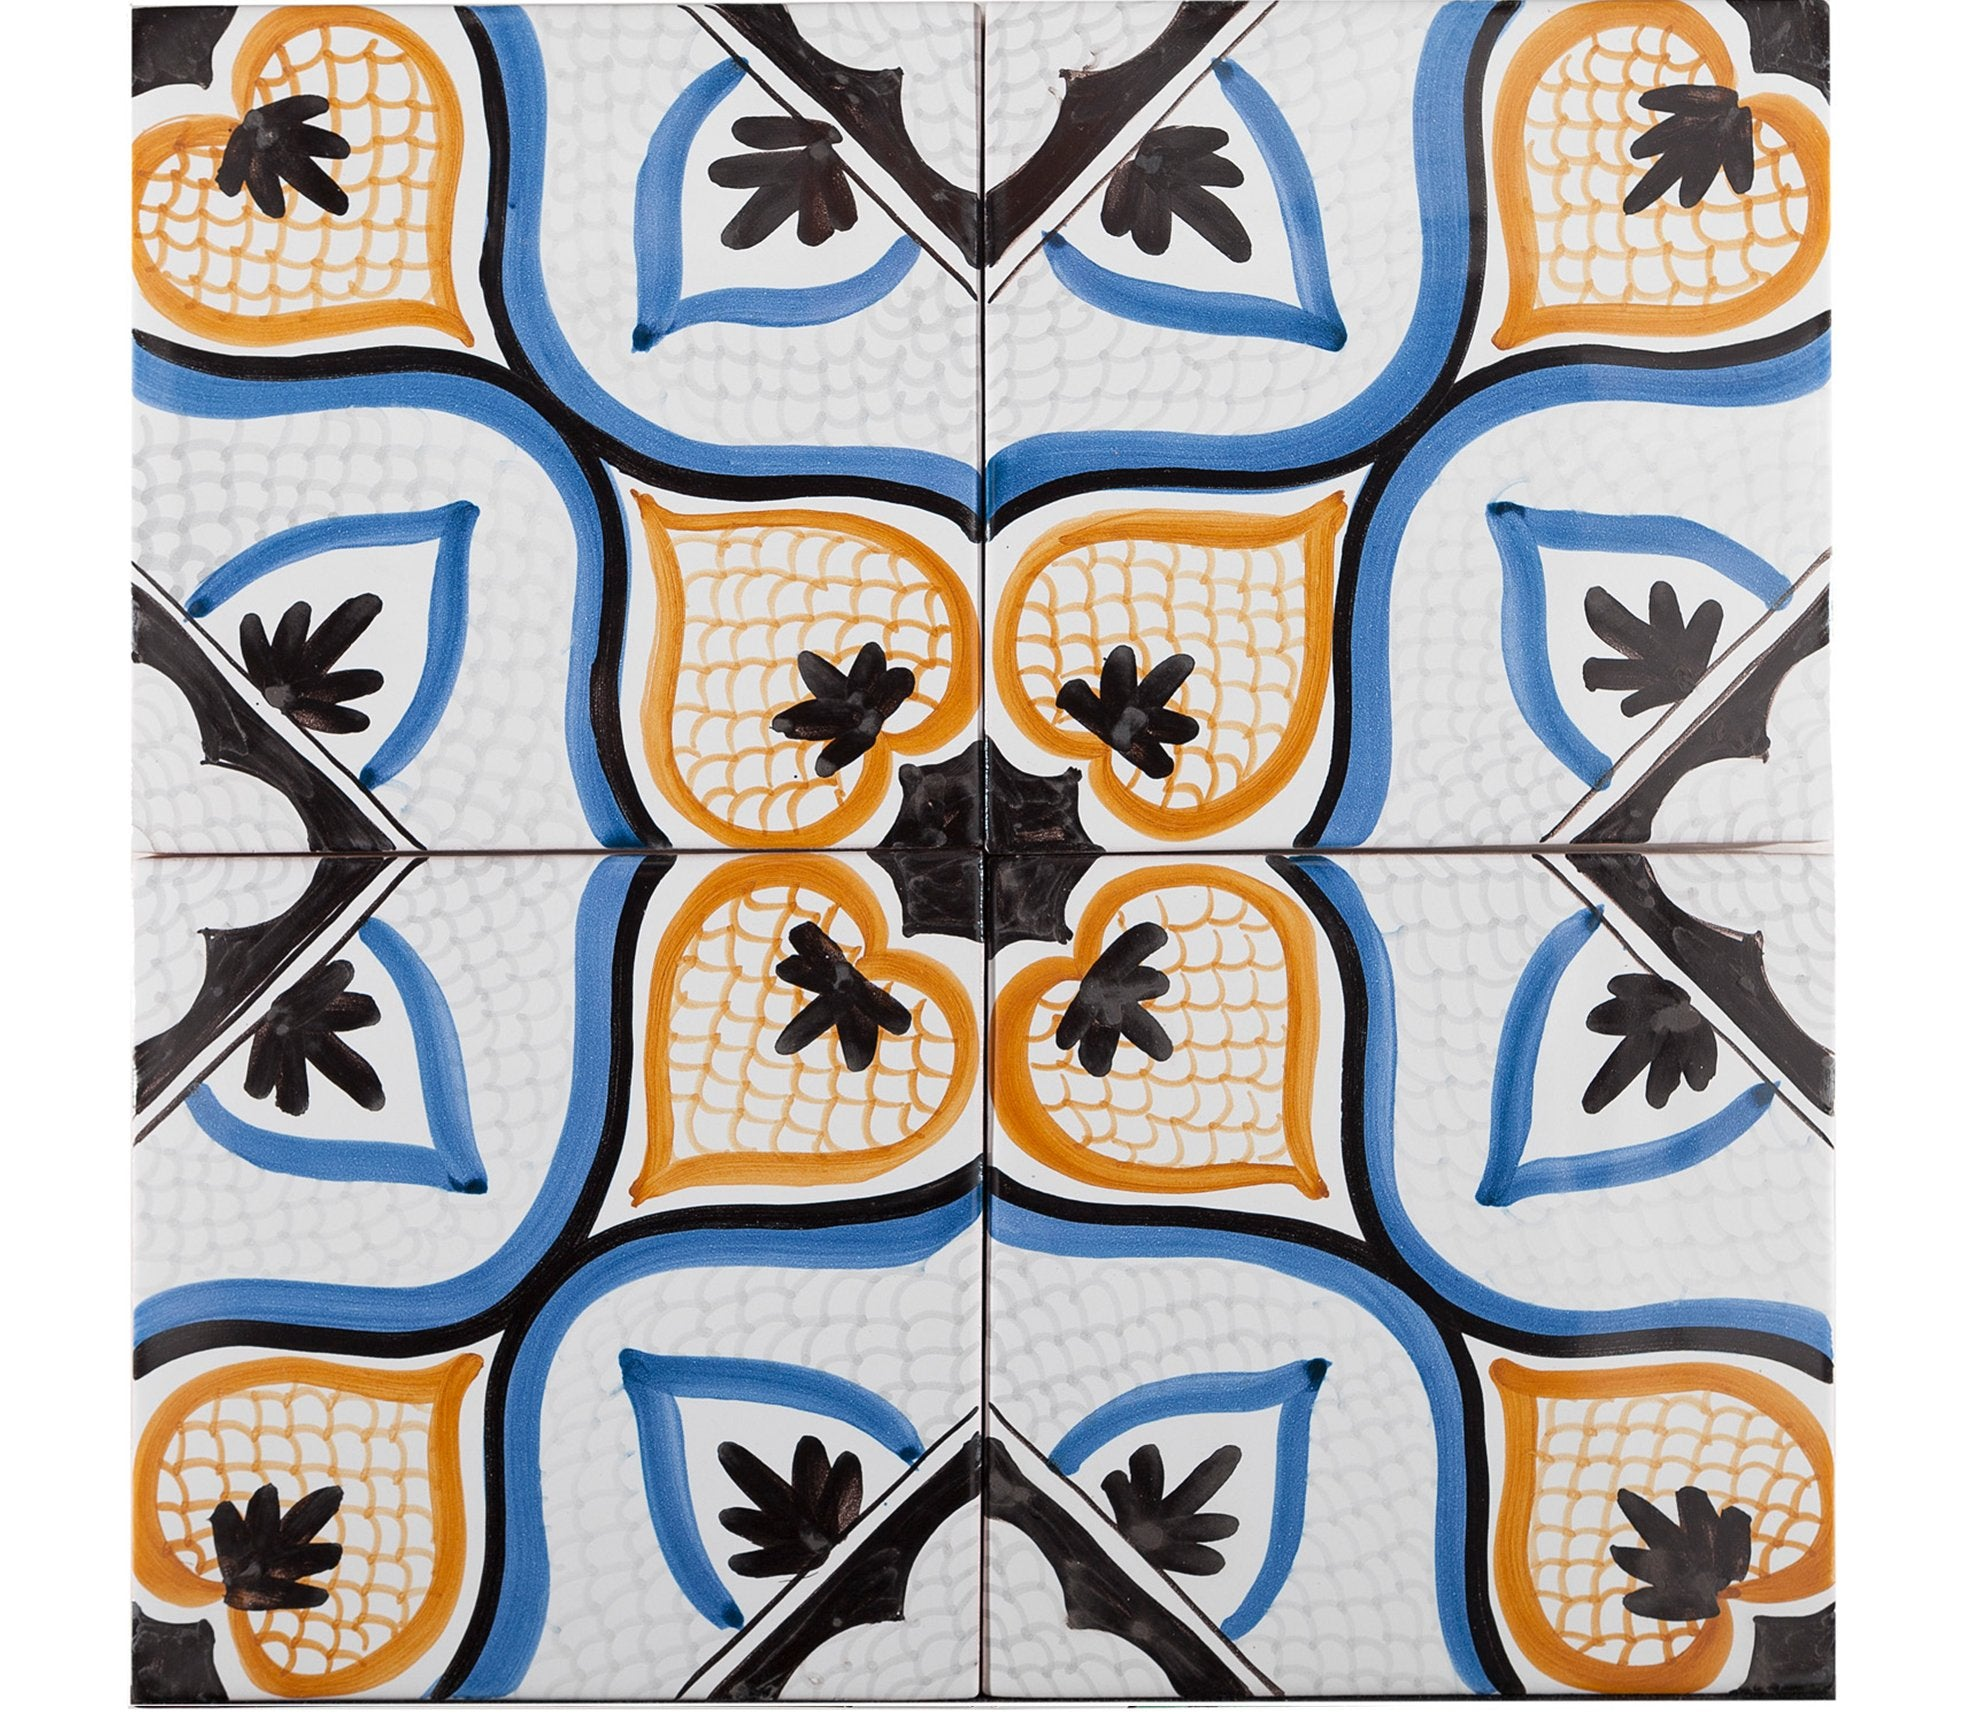 Series S Handpainted Tiles Product Image 2